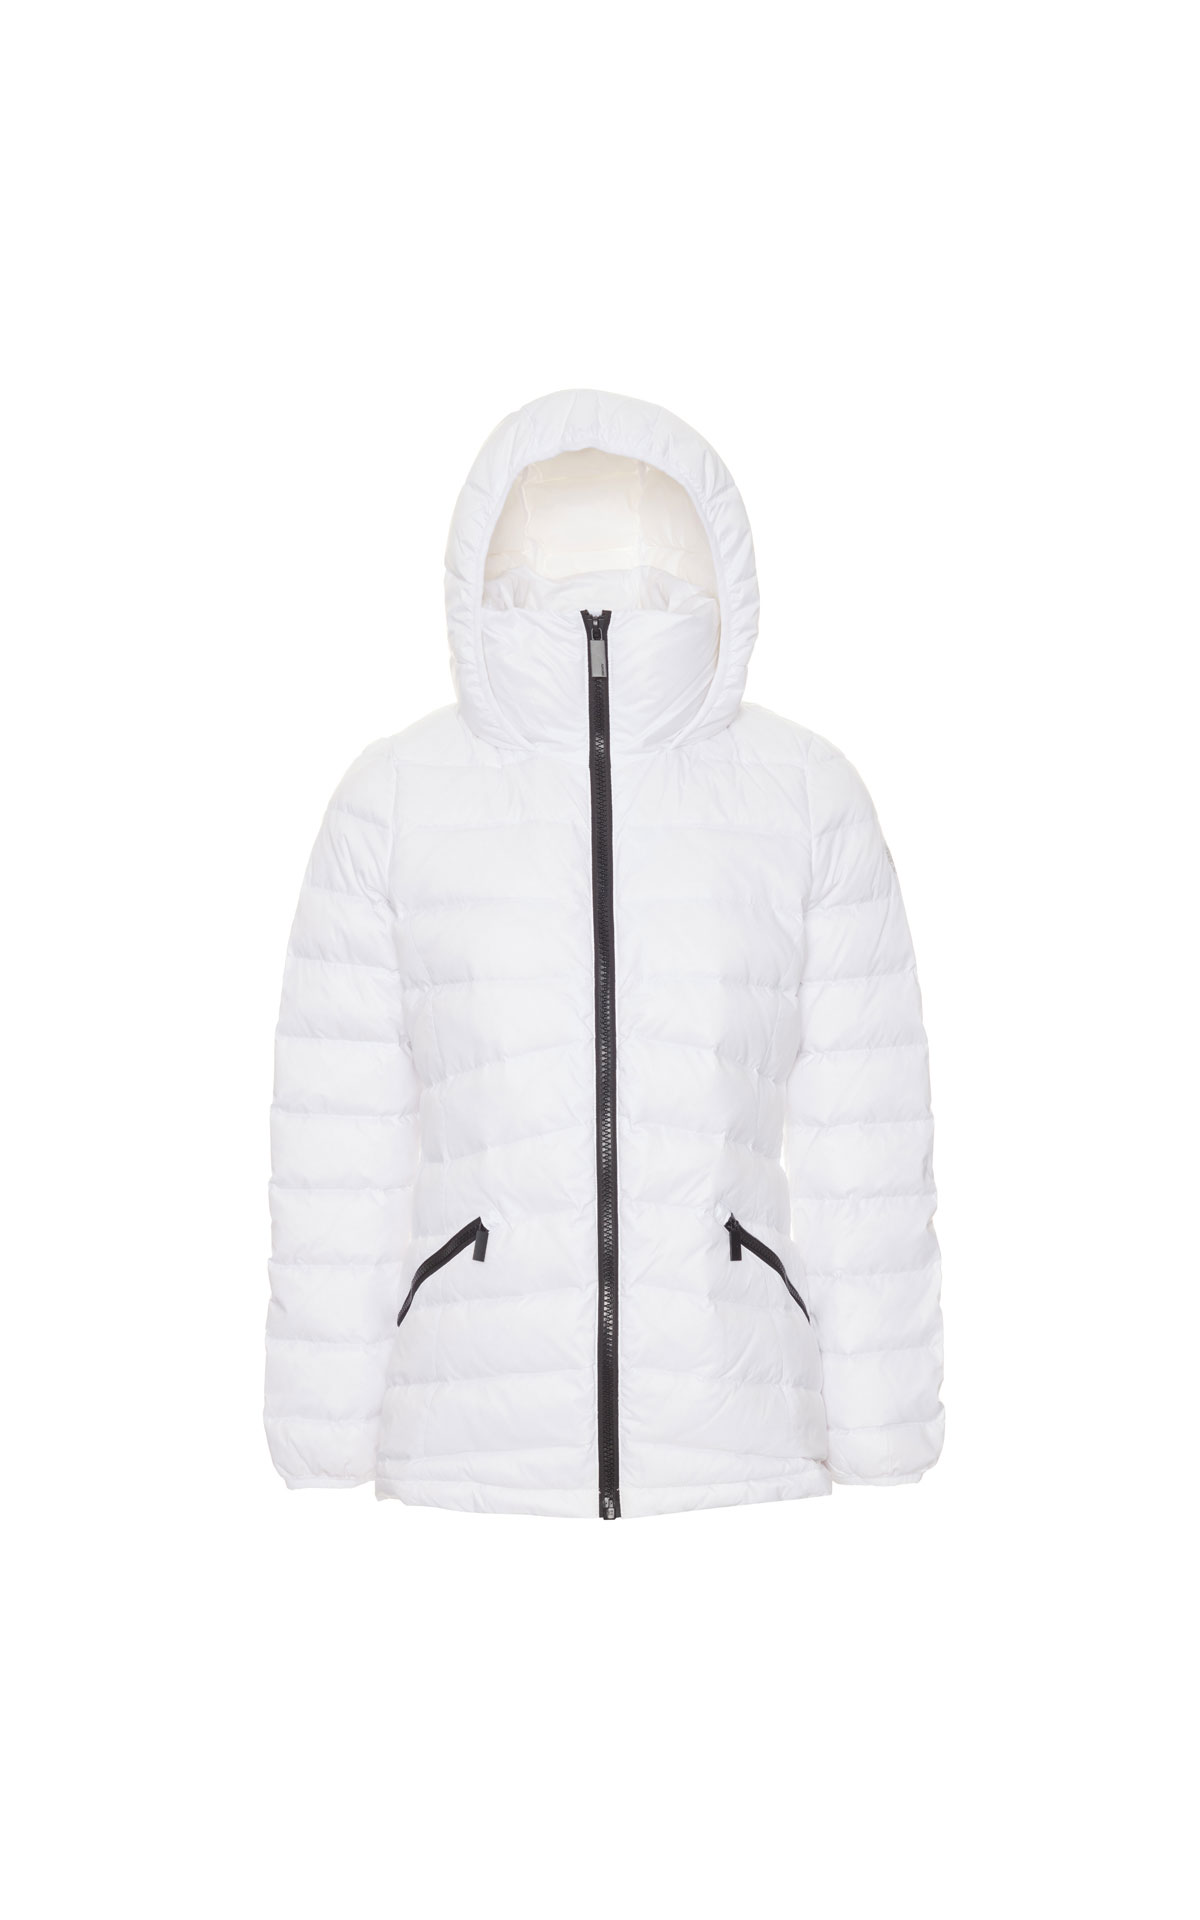 DKNY Packable women's outerwear from Bicester Village